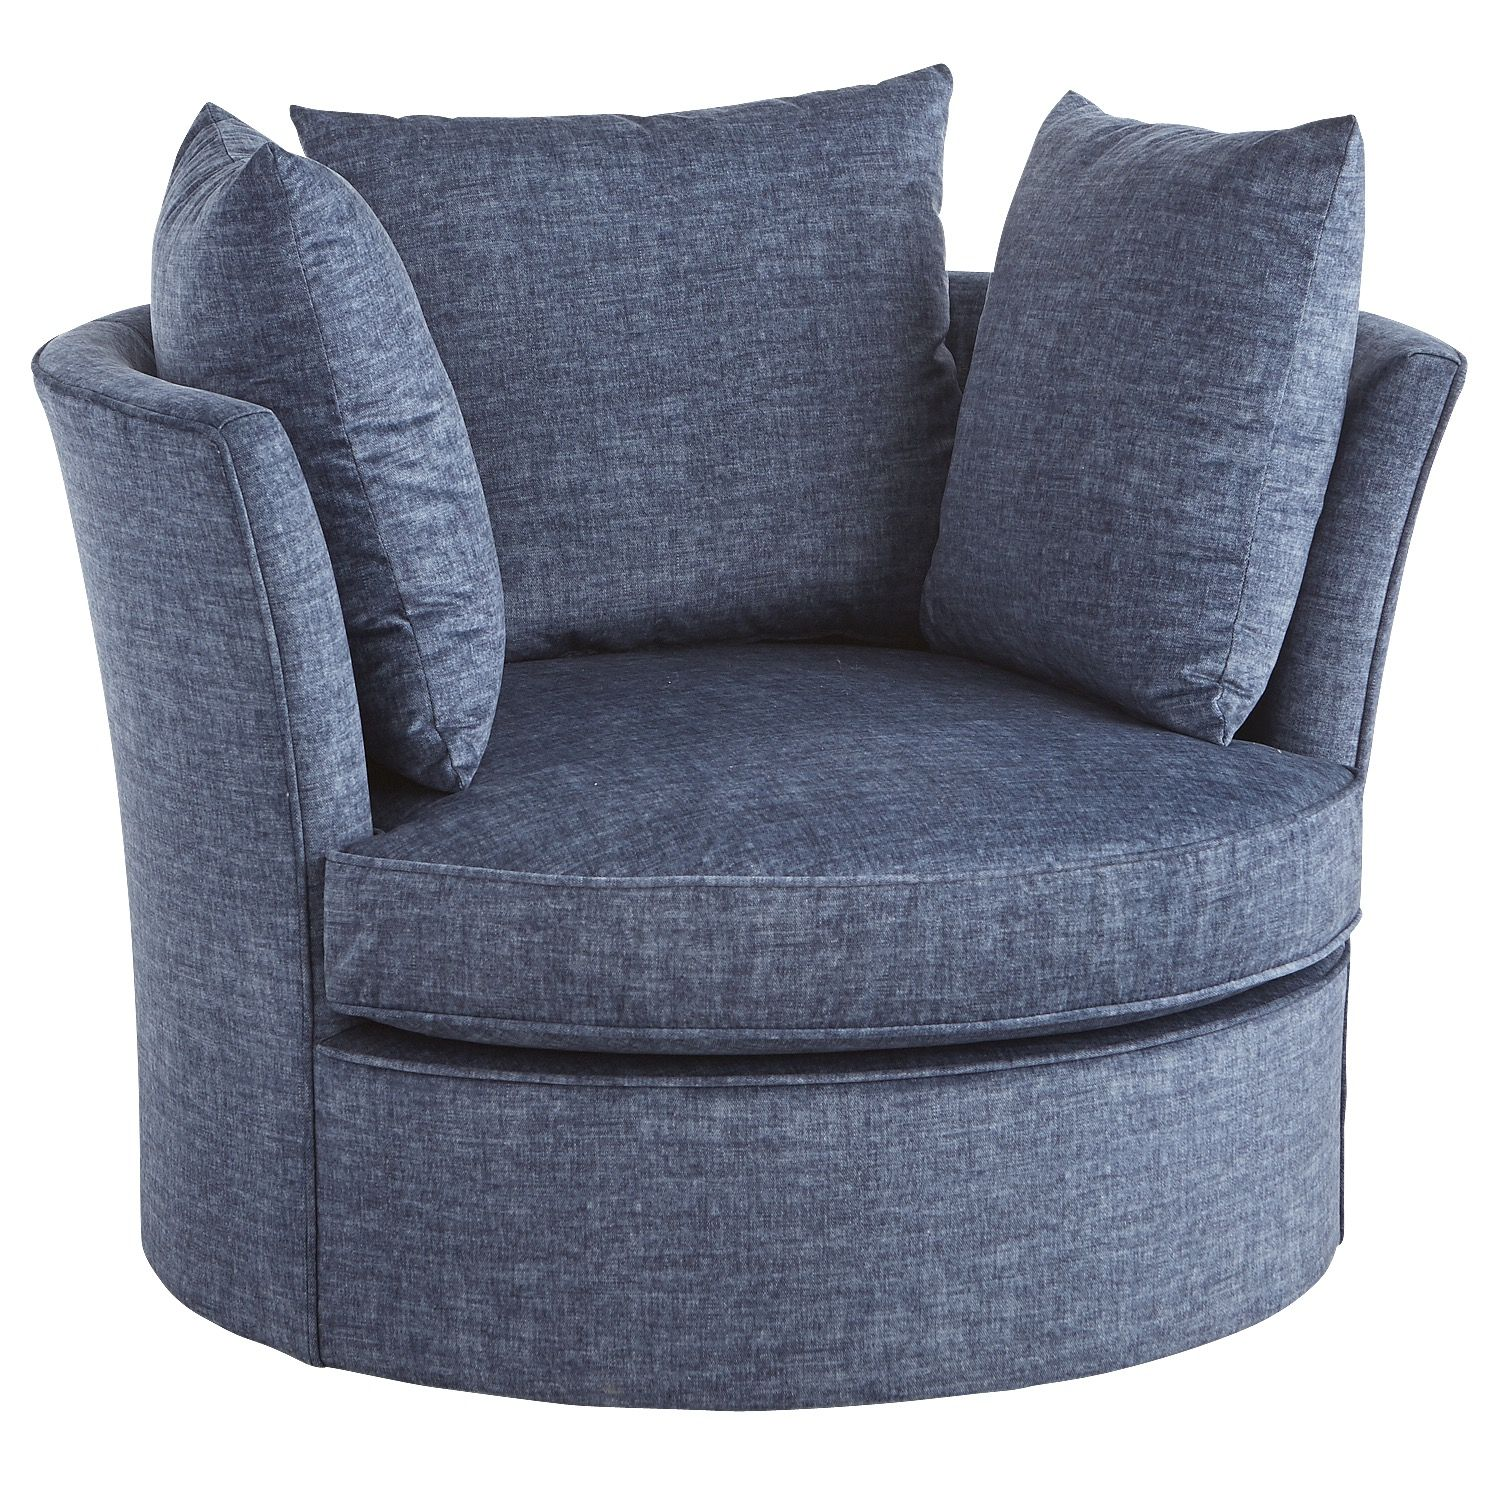 Blue Swivel Chair Ike Navy Blue Oversized Swivel Chair Products